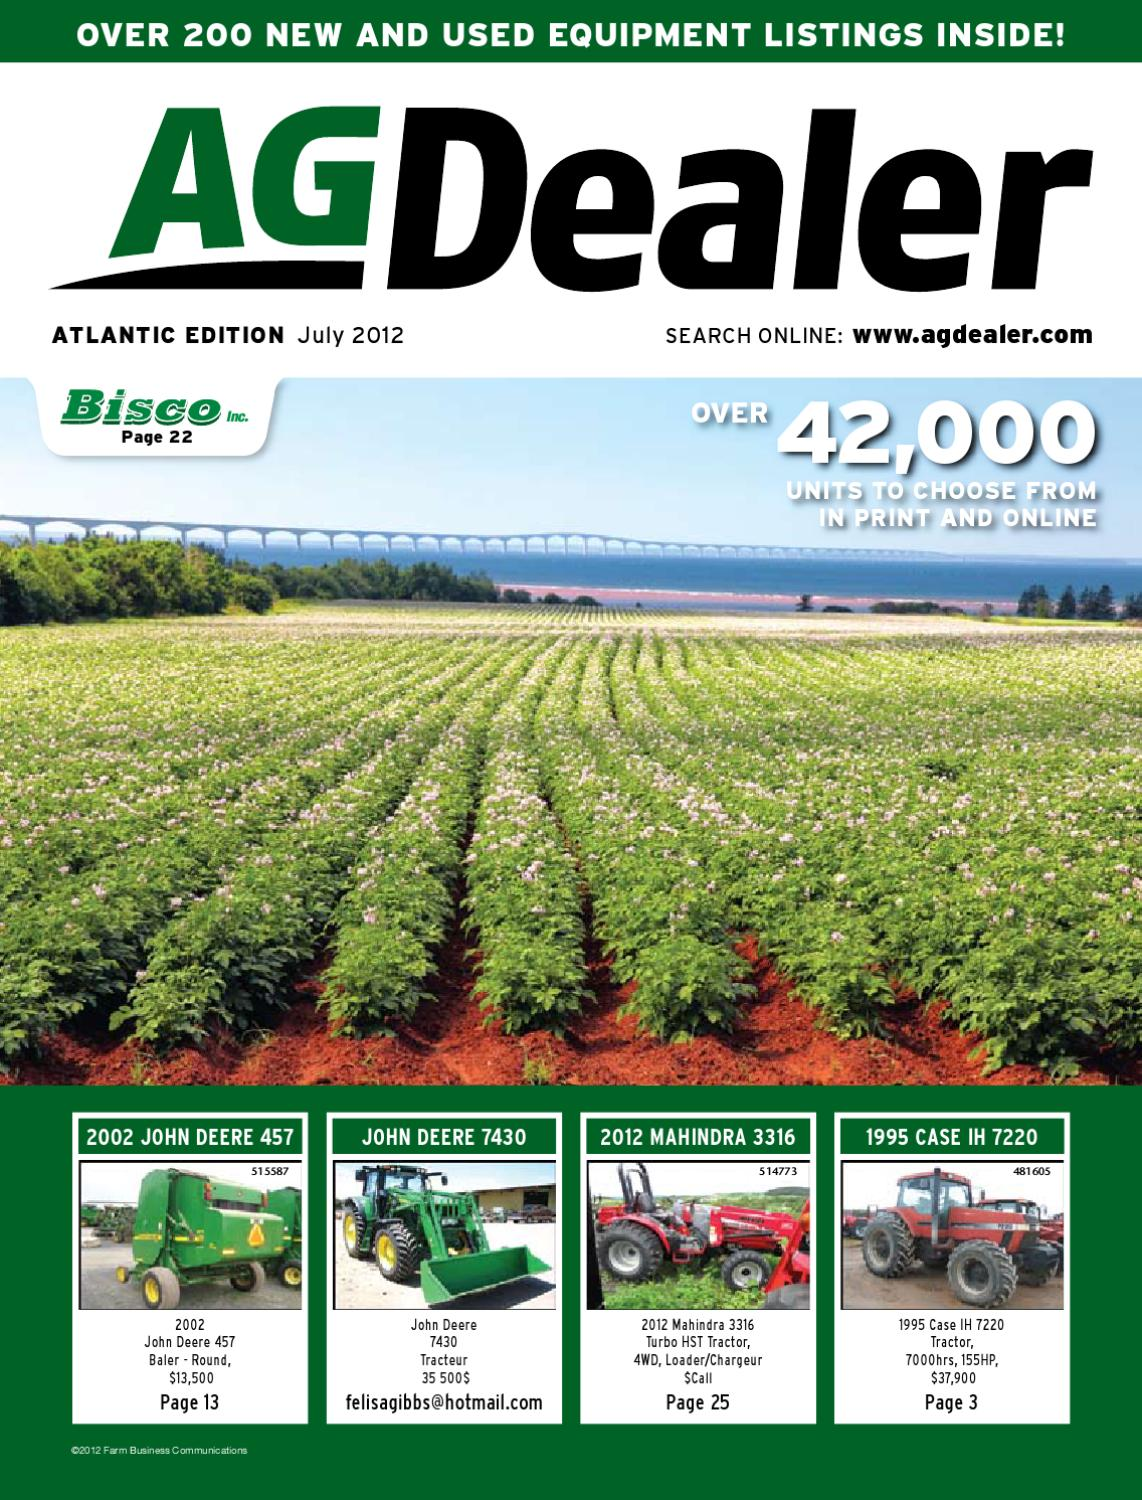 AGDealer Atlantic Edition, July 2012 by Farm Business